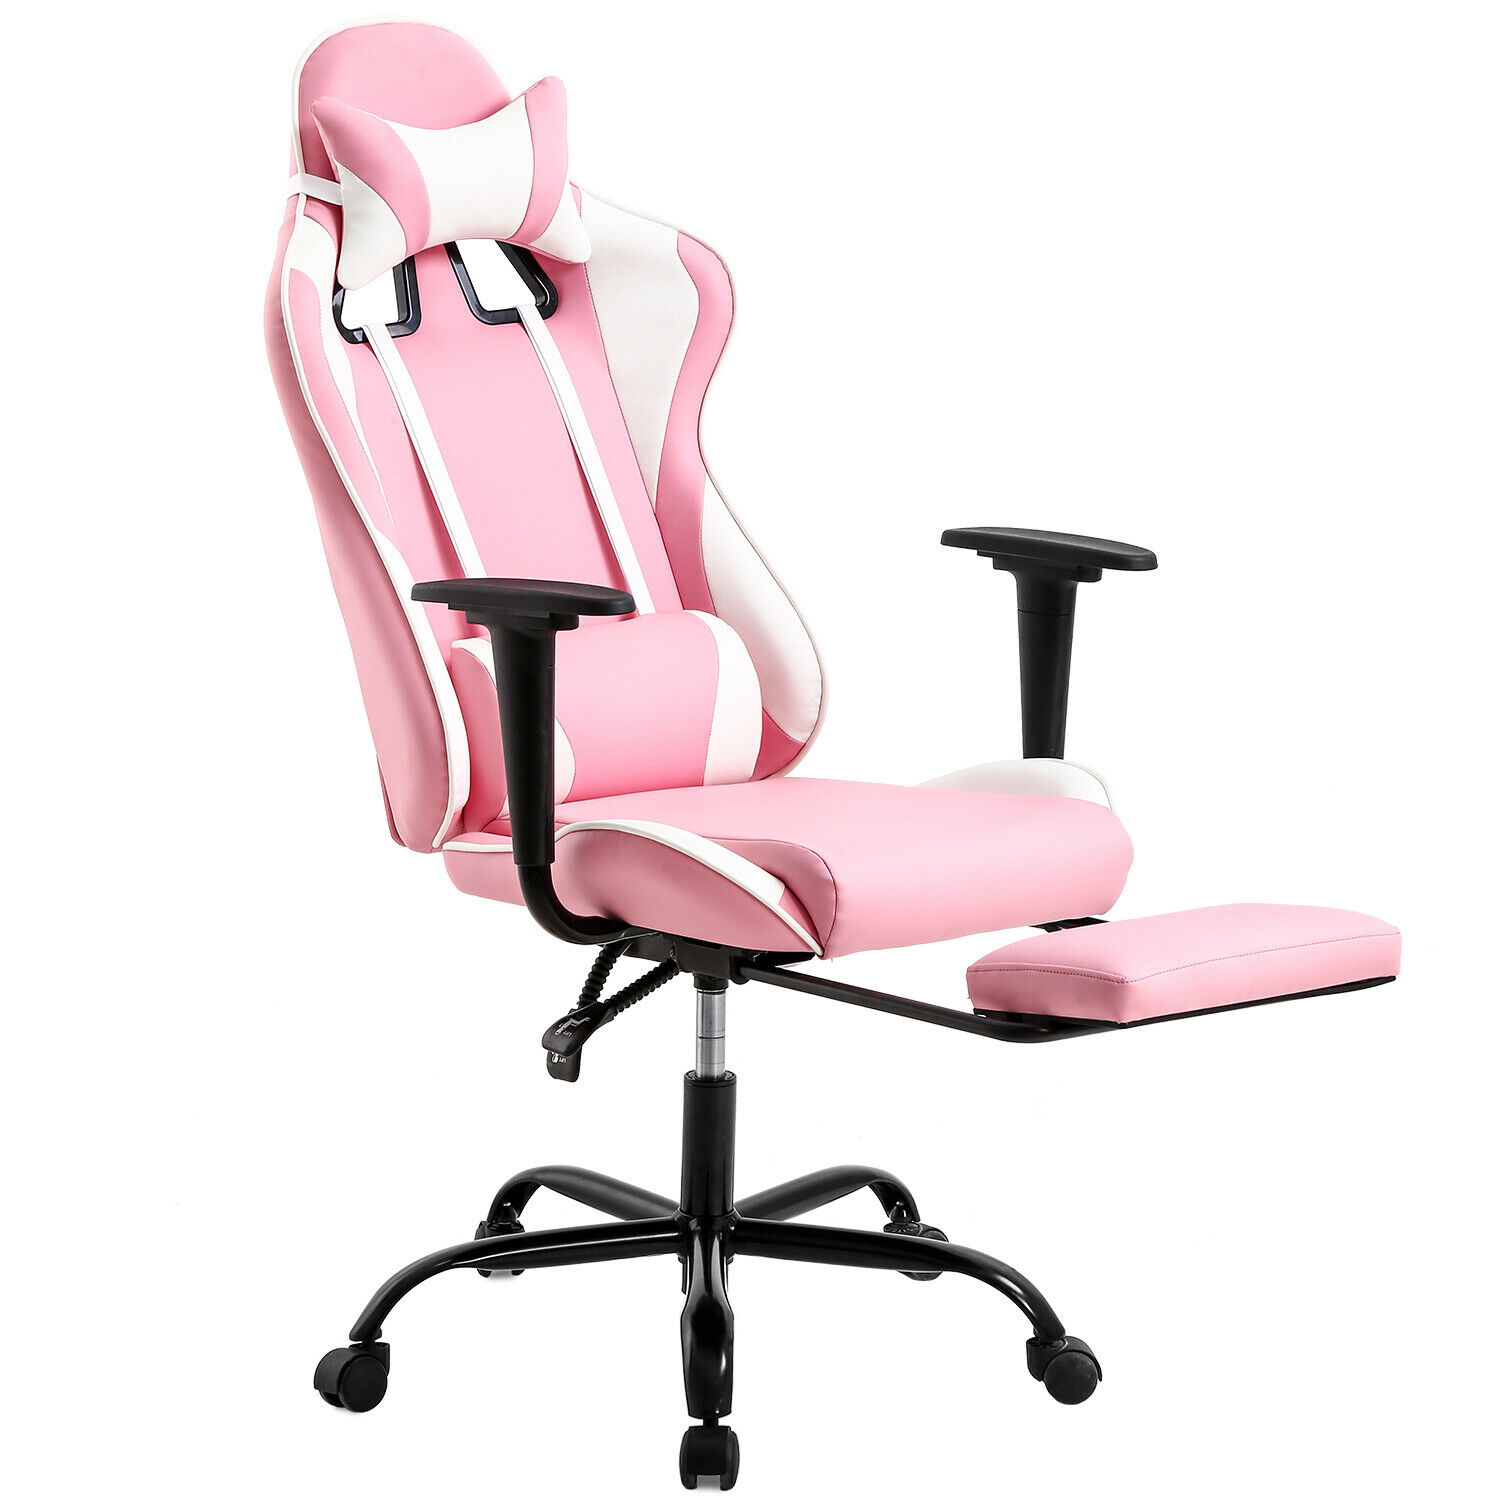 PC Gaming Chair Ergonomic Office Chair Executive  PU Computer Chair,Pink Chairs